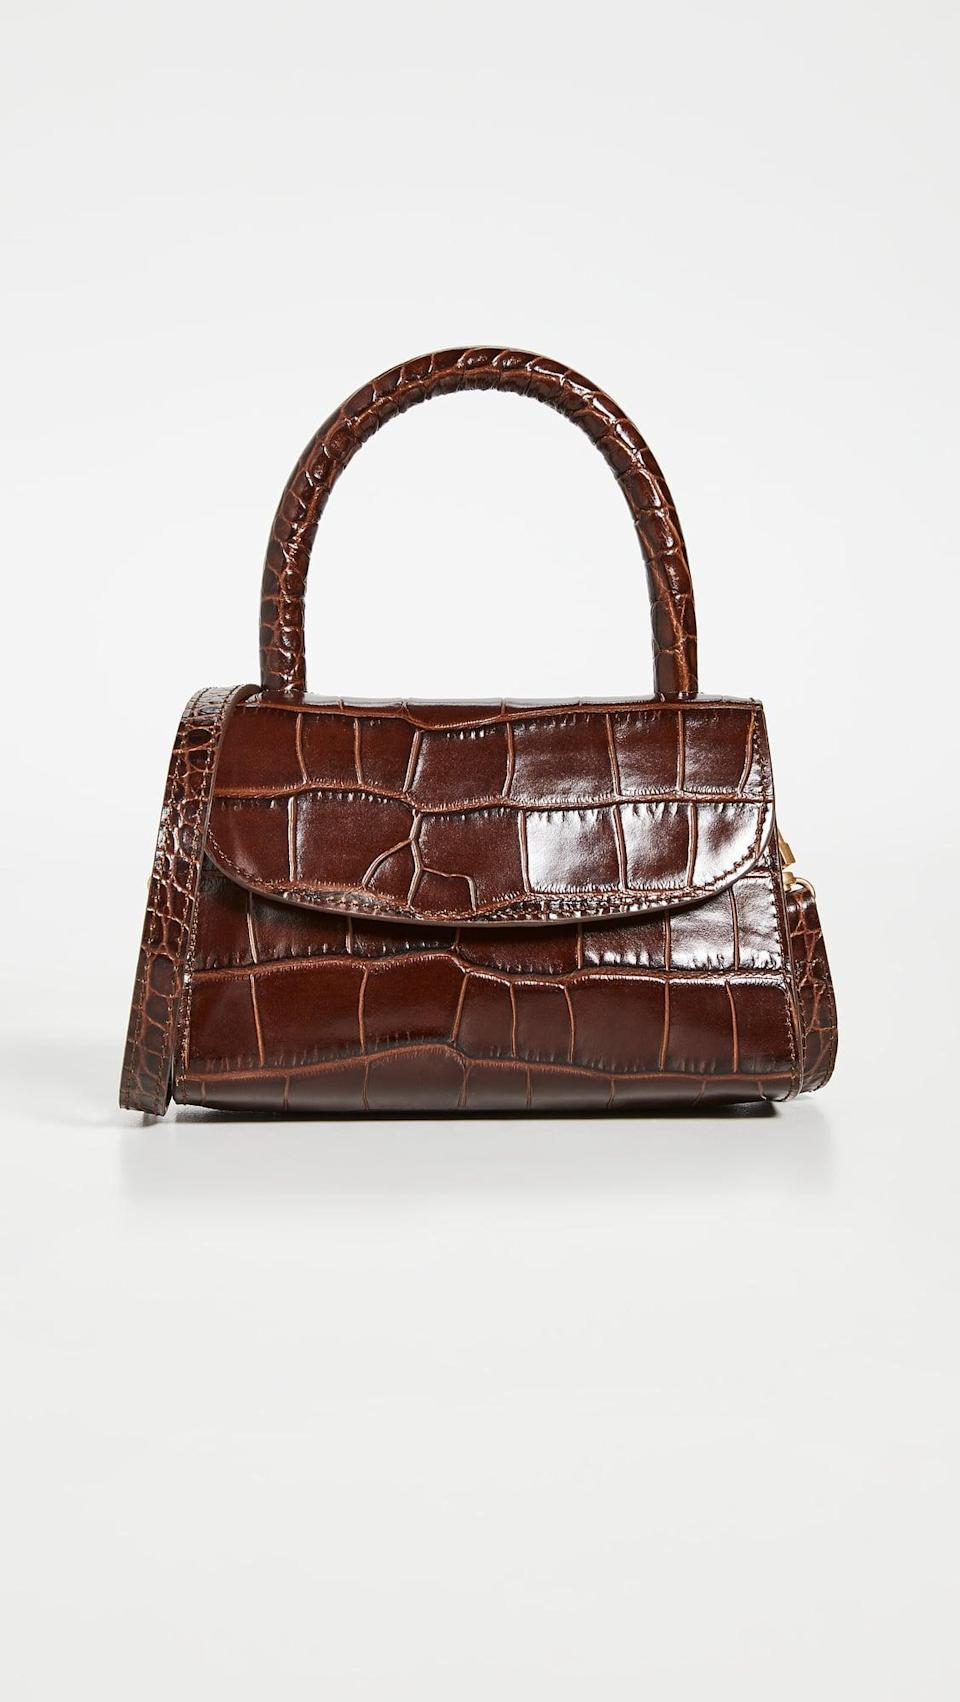 <p>This chocolate brown <span>By Far Mini Nutella Croco Top Handle Bag</span> ($562) fits just the essentials, and is so chic and compact.</p>